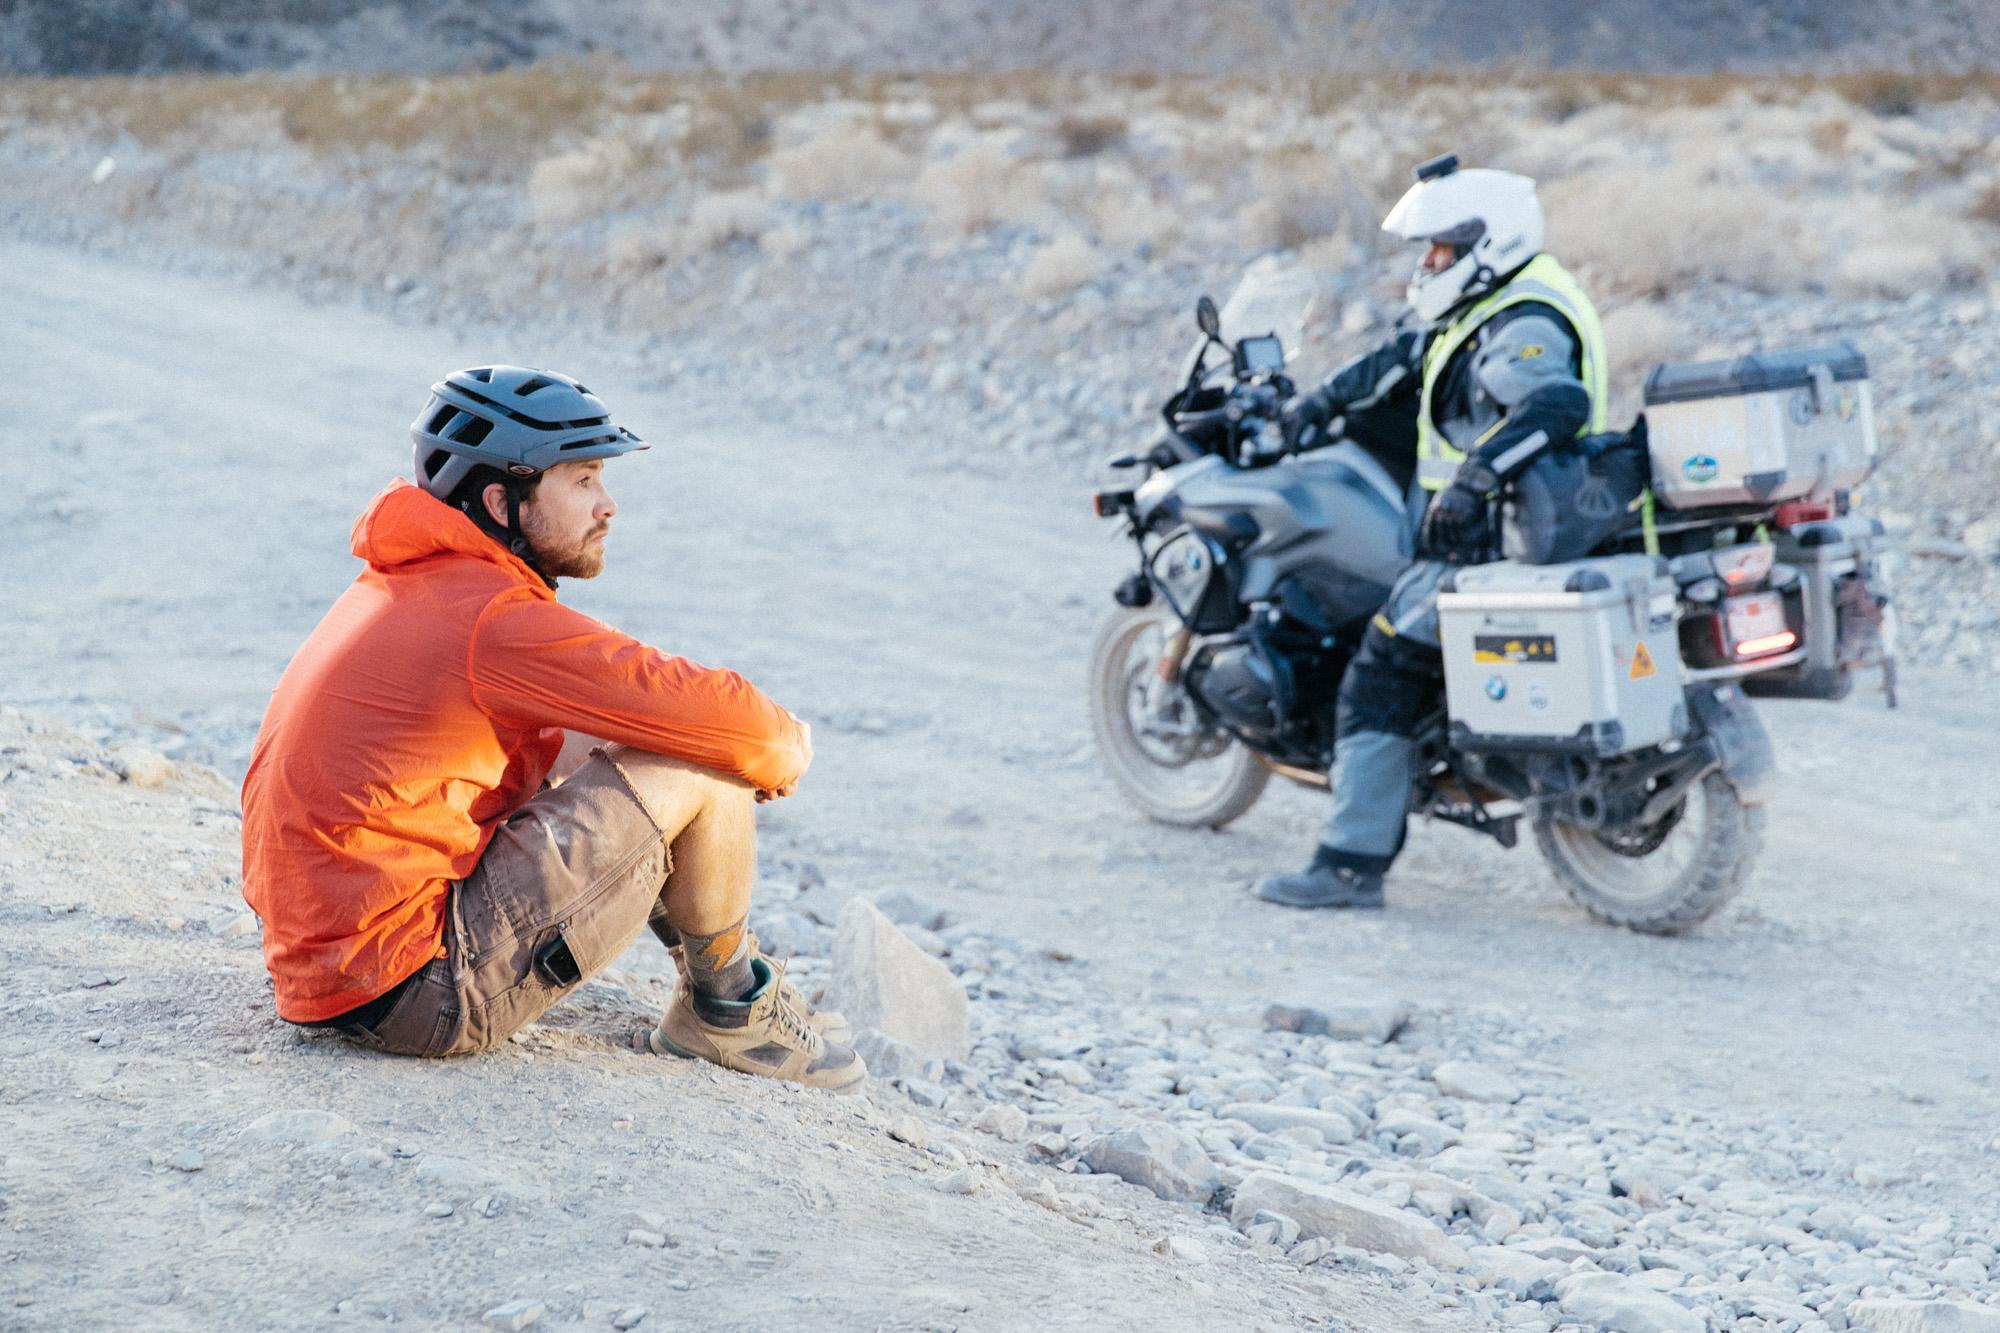 Bo, chatting with the moto tourists.